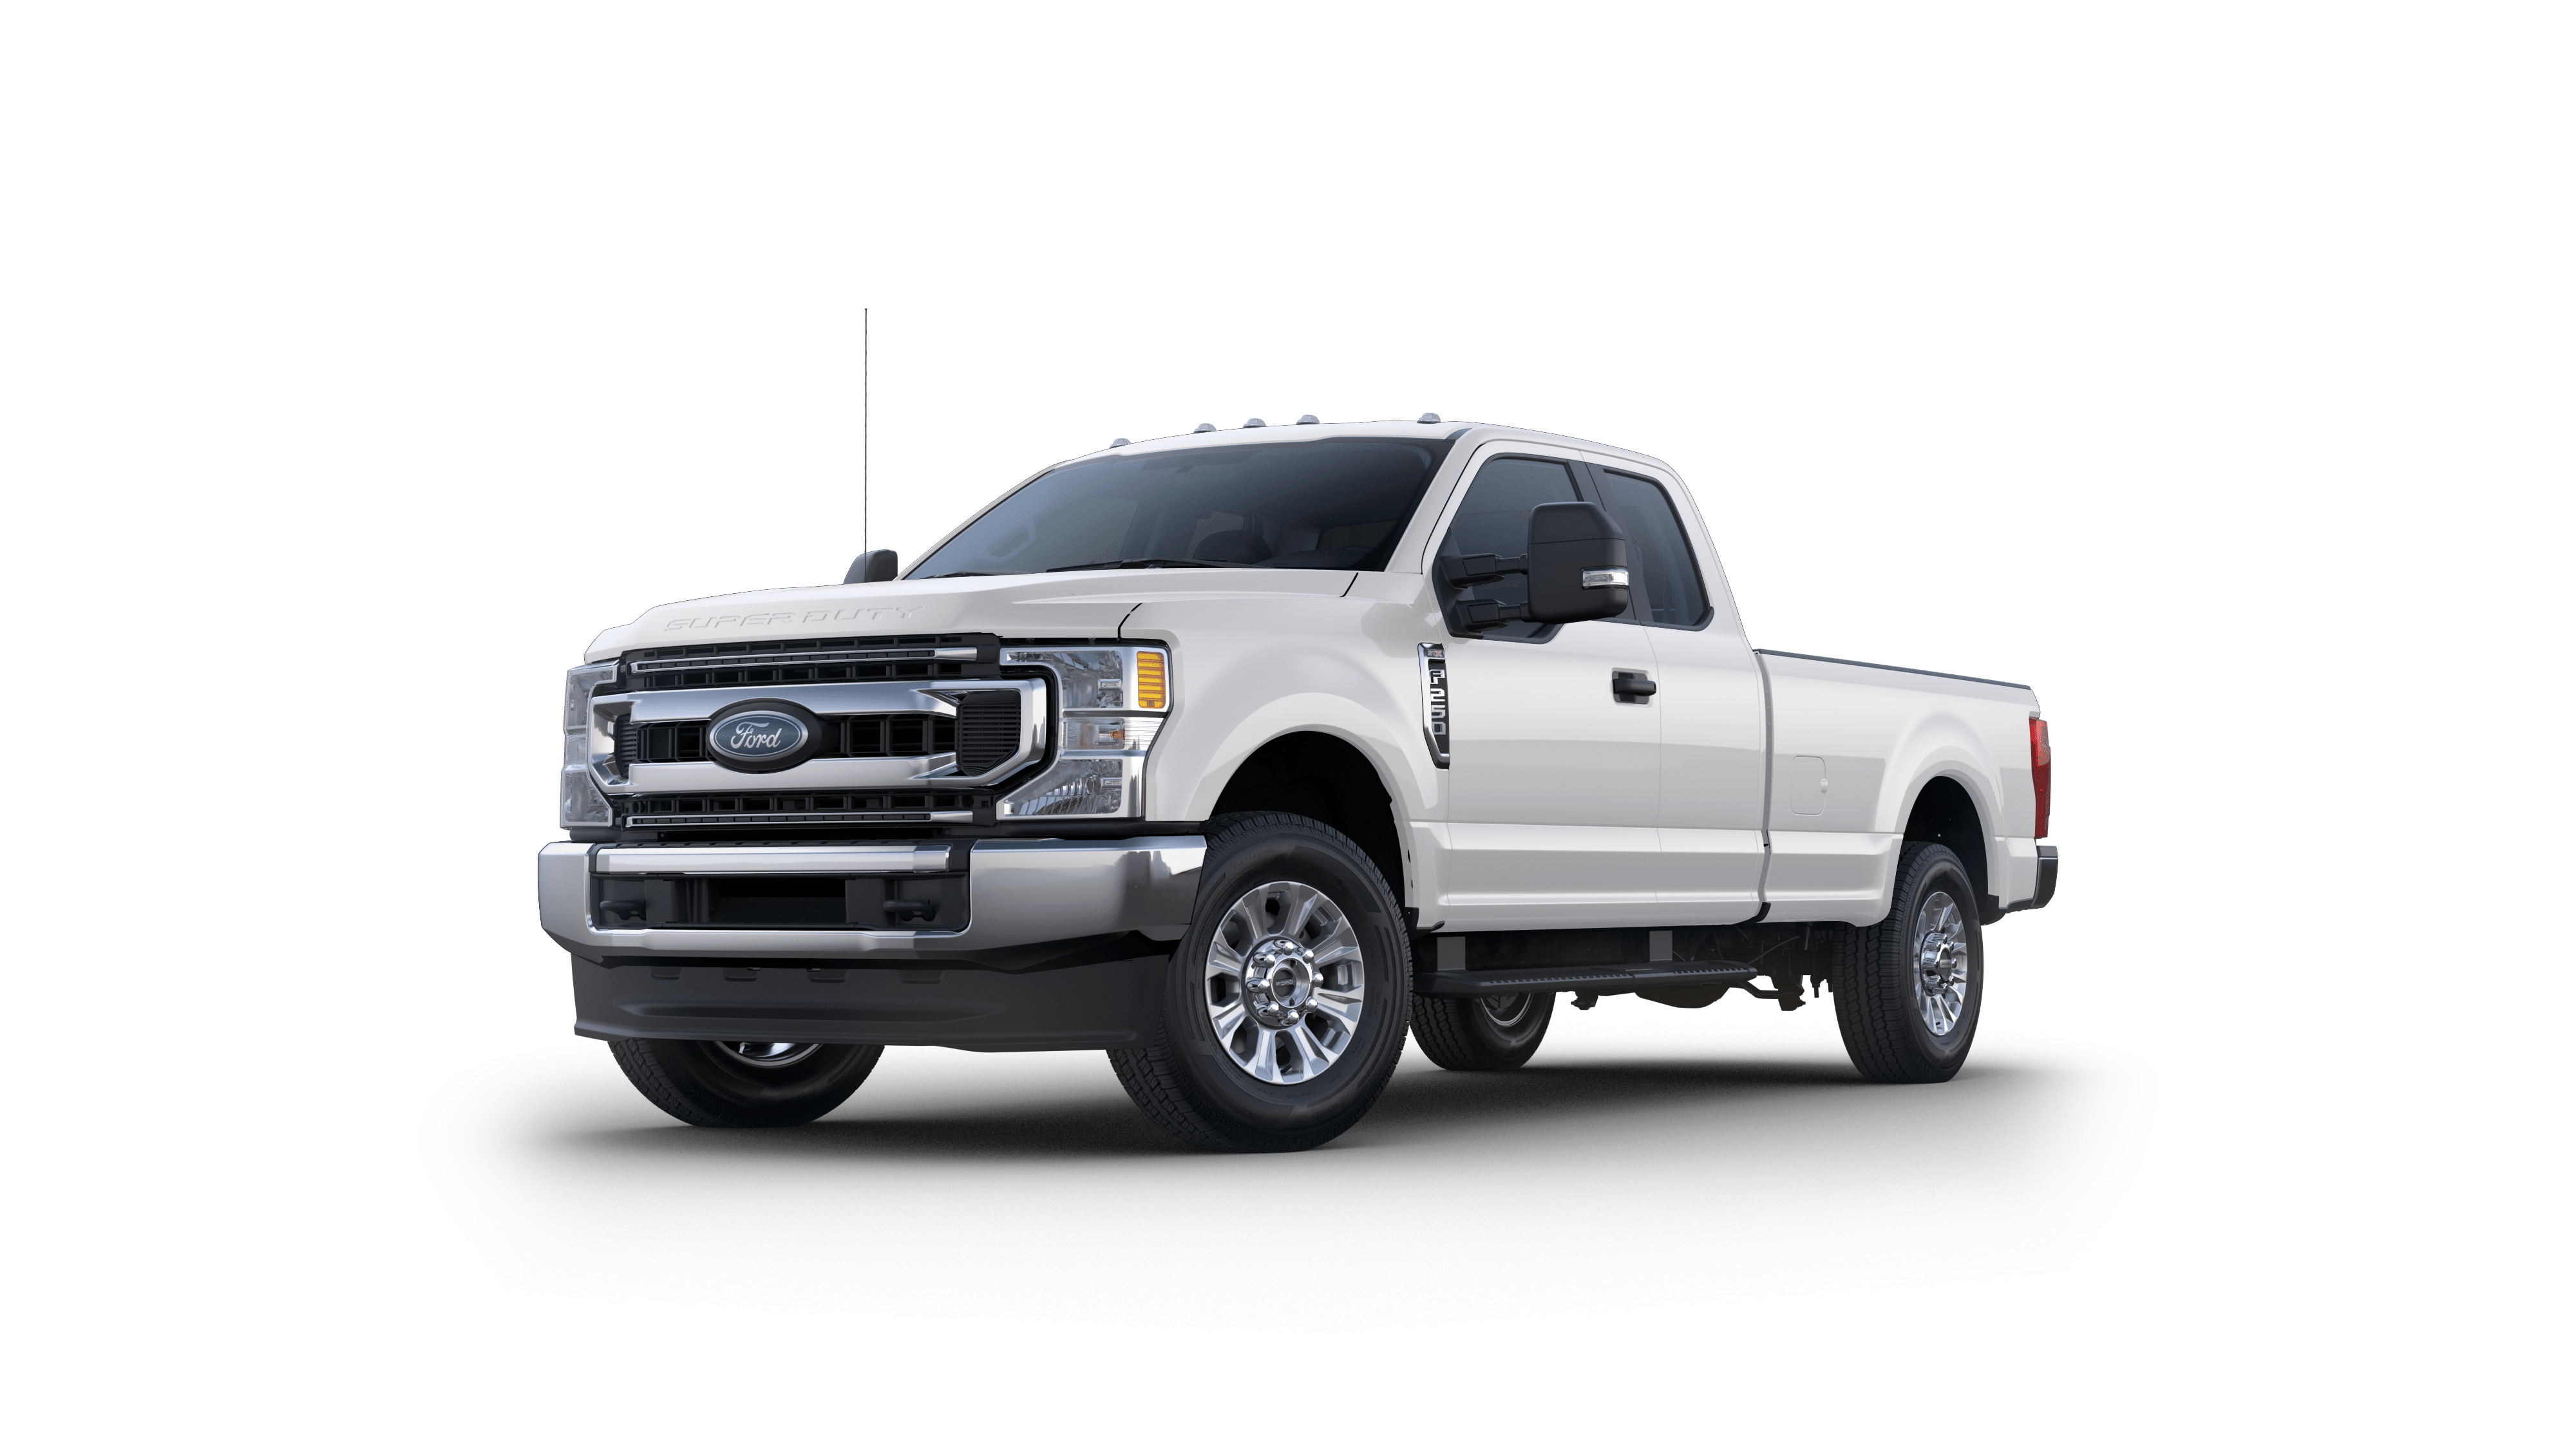 2020 Ford Super Duty F-250 SRW Vehicle Photo in Souderton, PA 18964-1038